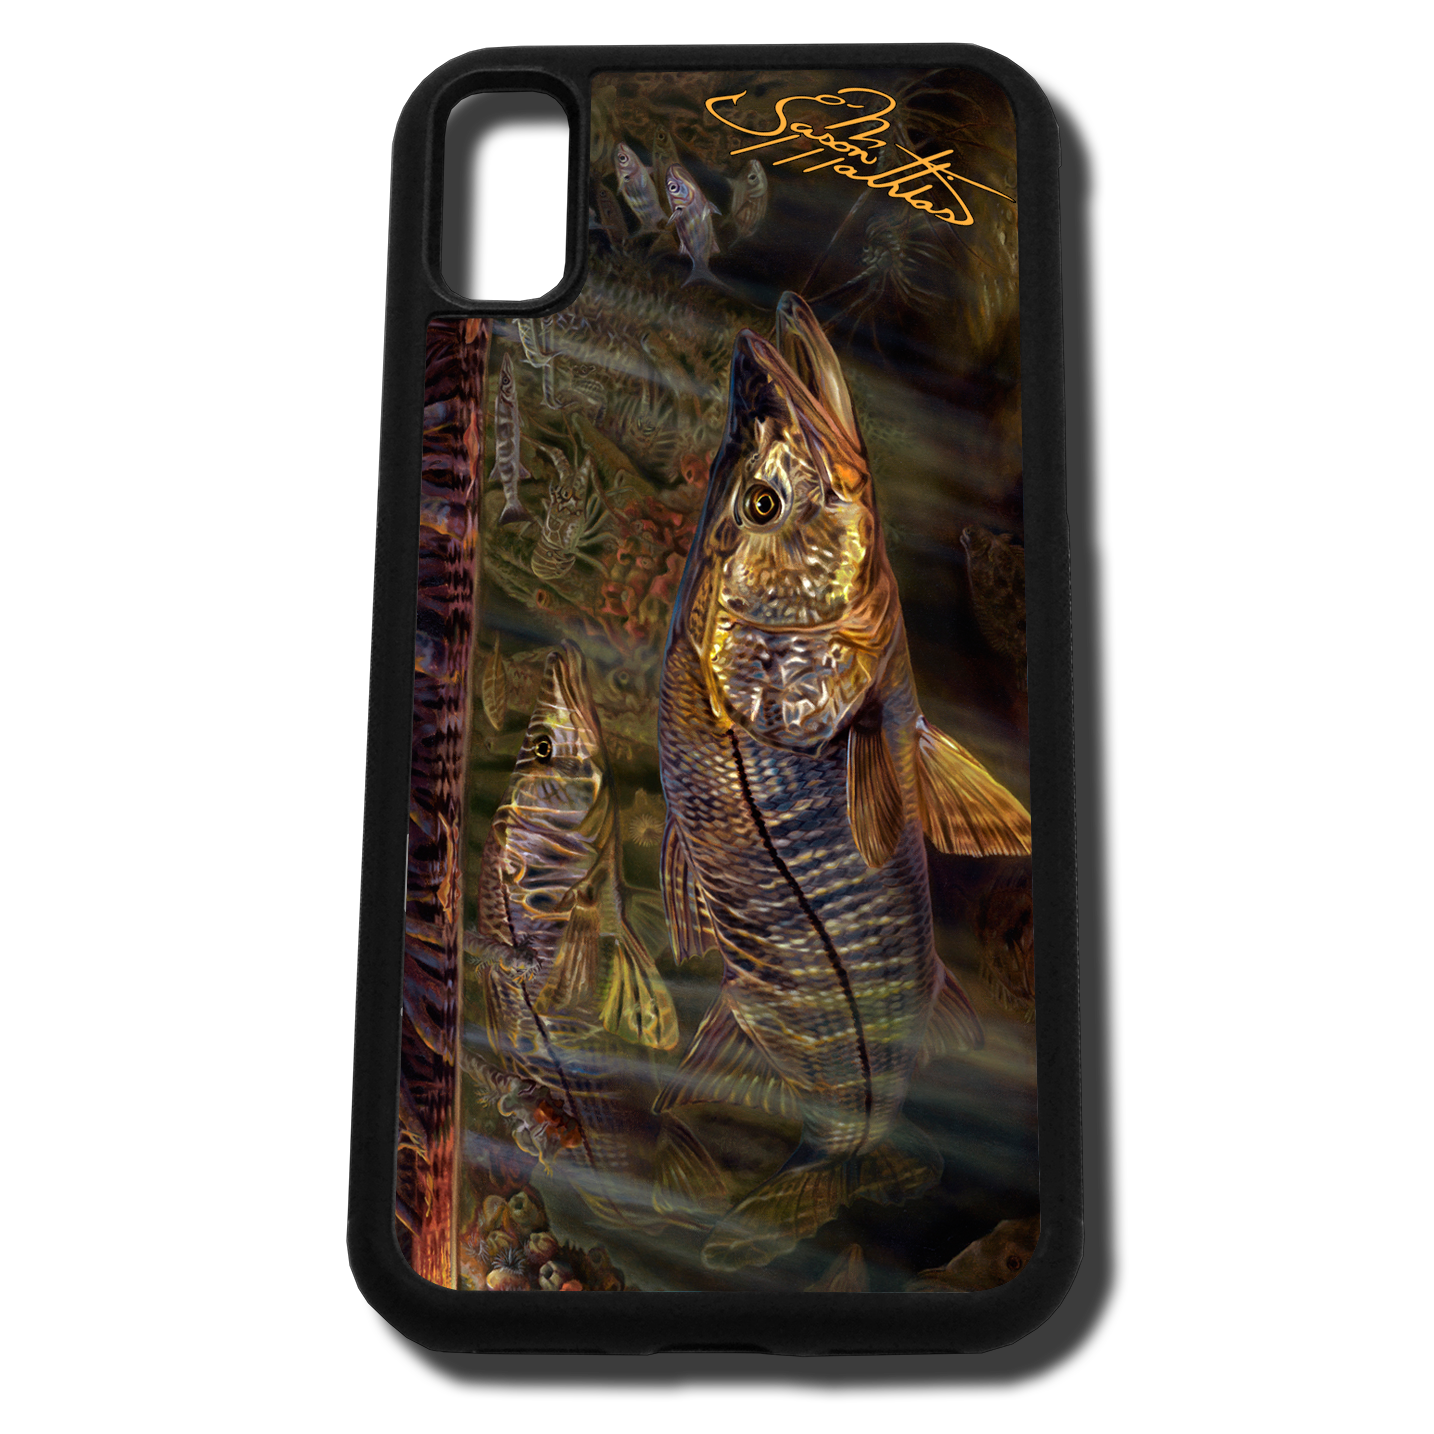 iphone-x-case-snook.png